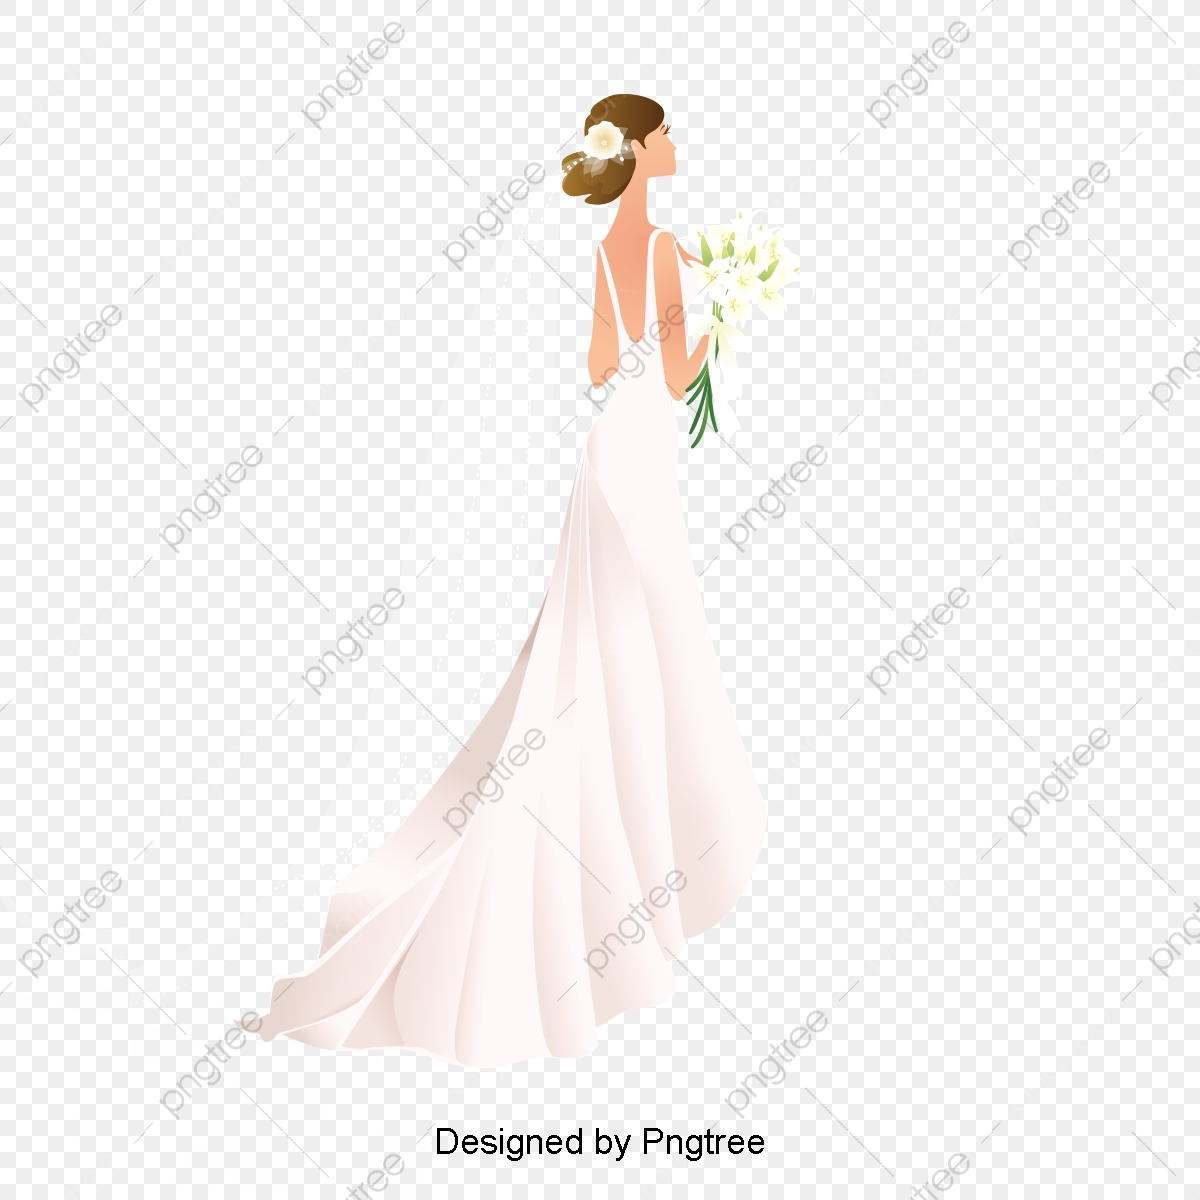 Vector Bride, Bride, New Personality, Wedding Dress PNG and Vector.